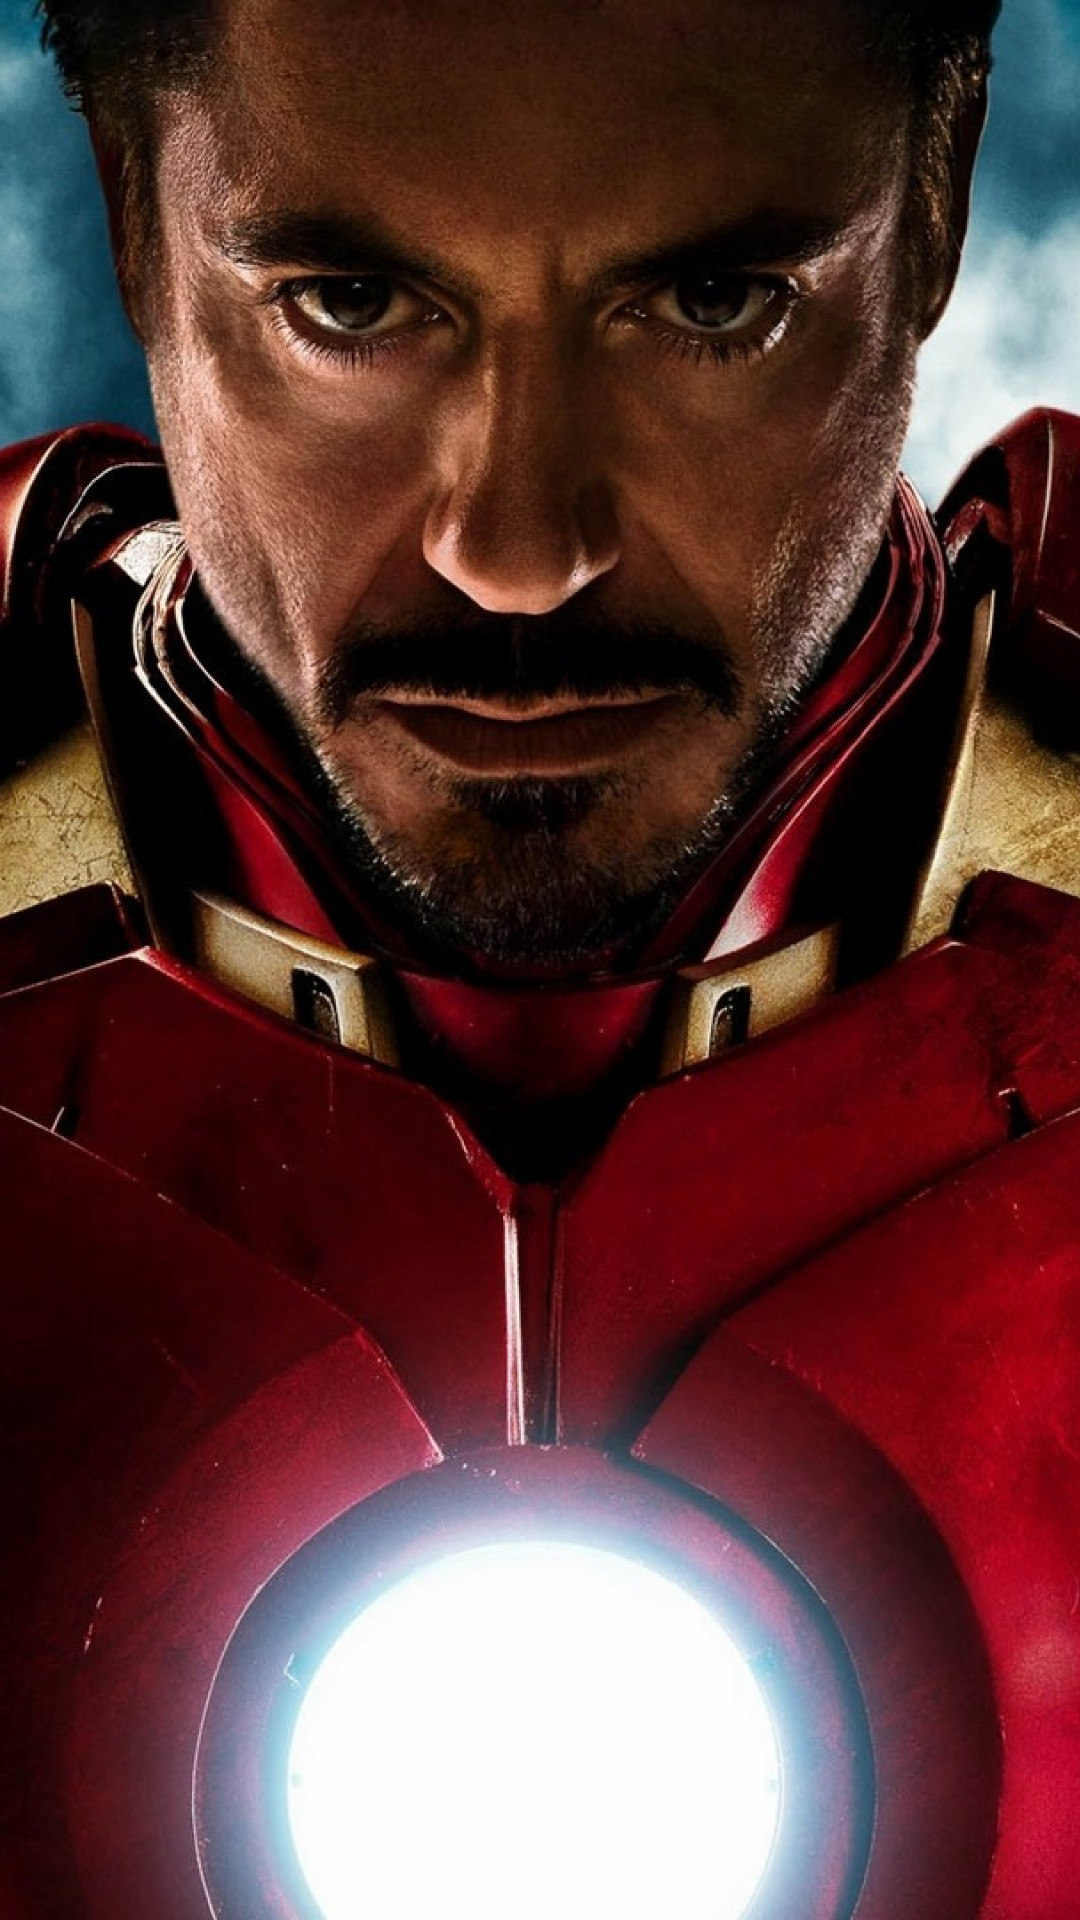 Res: 1080x1920, mobile iron man wallpaper. robert downing hd wallpaper.  iron_man_robert_downey_jr_the_avengers_movie__90738